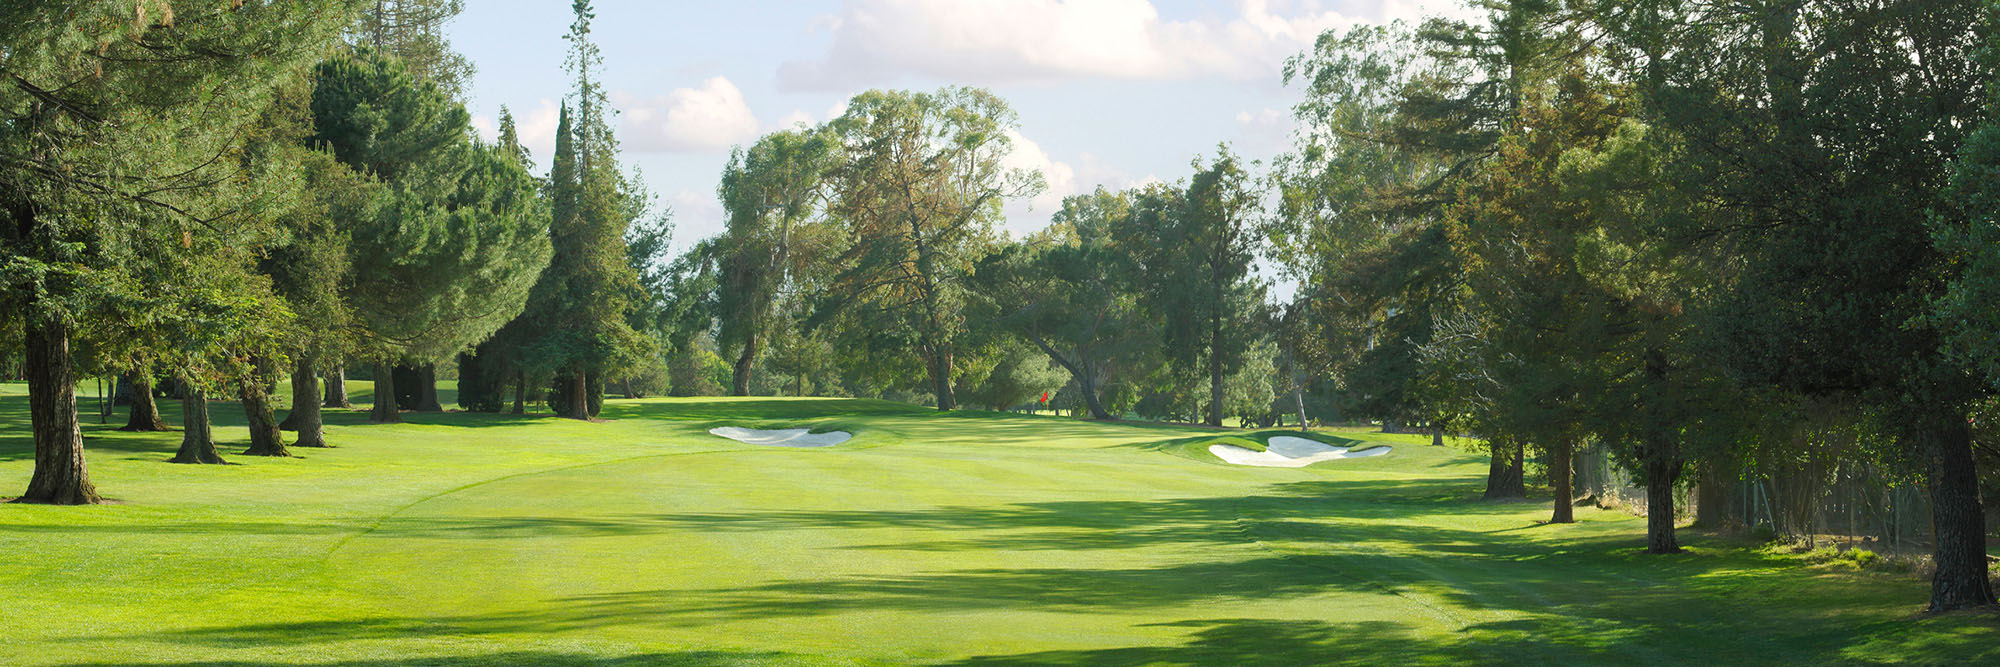 Golf Course Image - San Jose Country Club No. 10